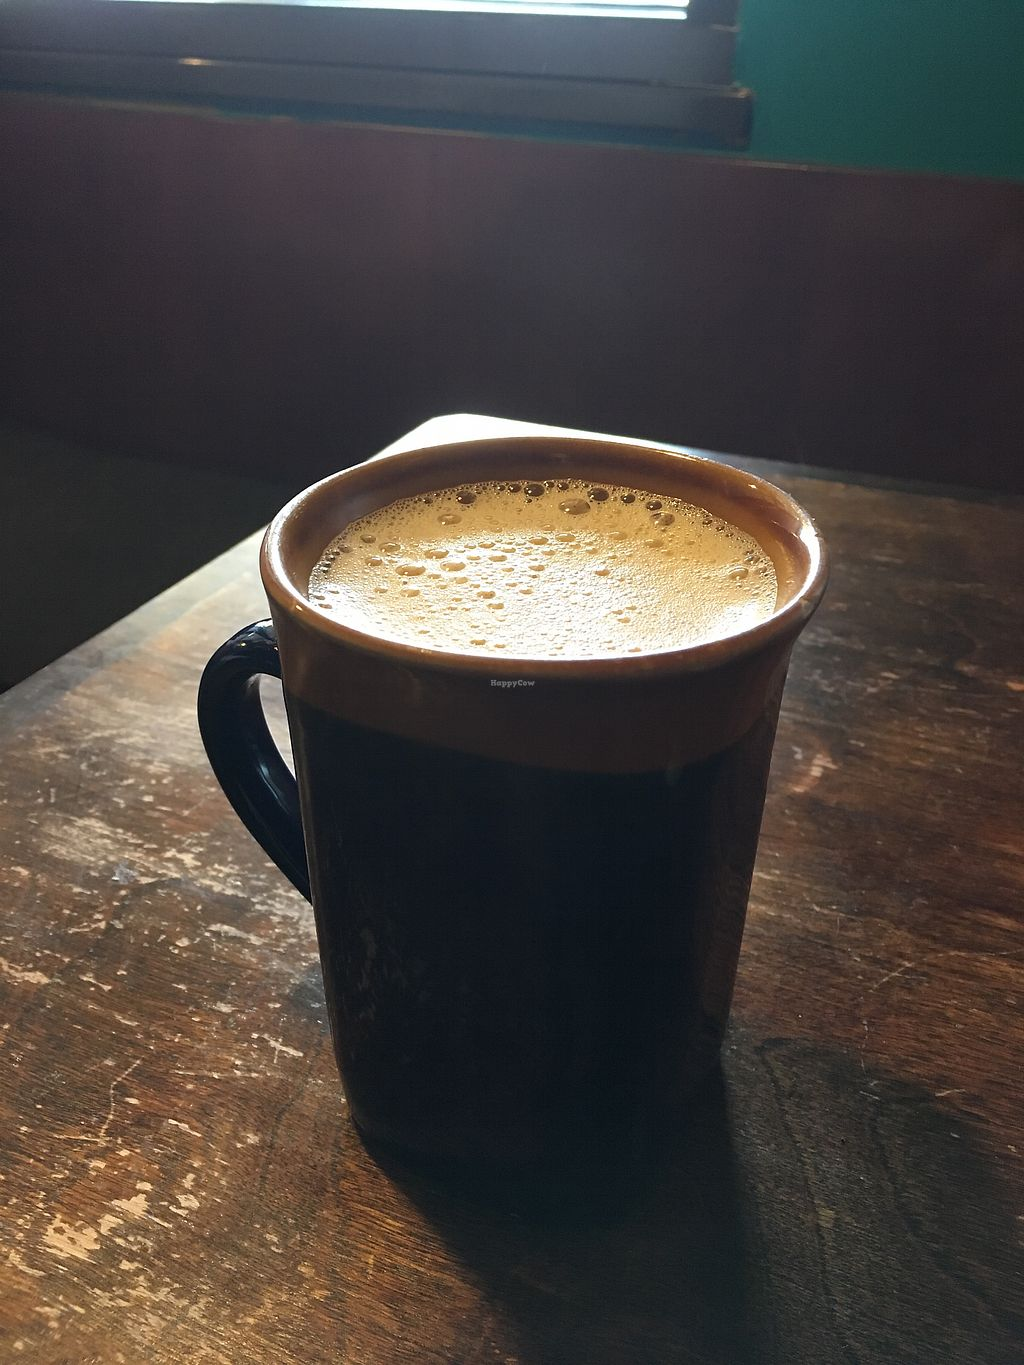 "Photo of Marine View Espresso  by <a href=""/members/profile/DanielaHansen"">DanielaHansen</a> <br/>Spiced black tea latte with hemp milk. So delicious!!! <br/> October 24, 2017  - <a href='/contact/abuse/image/103564/318220'>Report</a>"